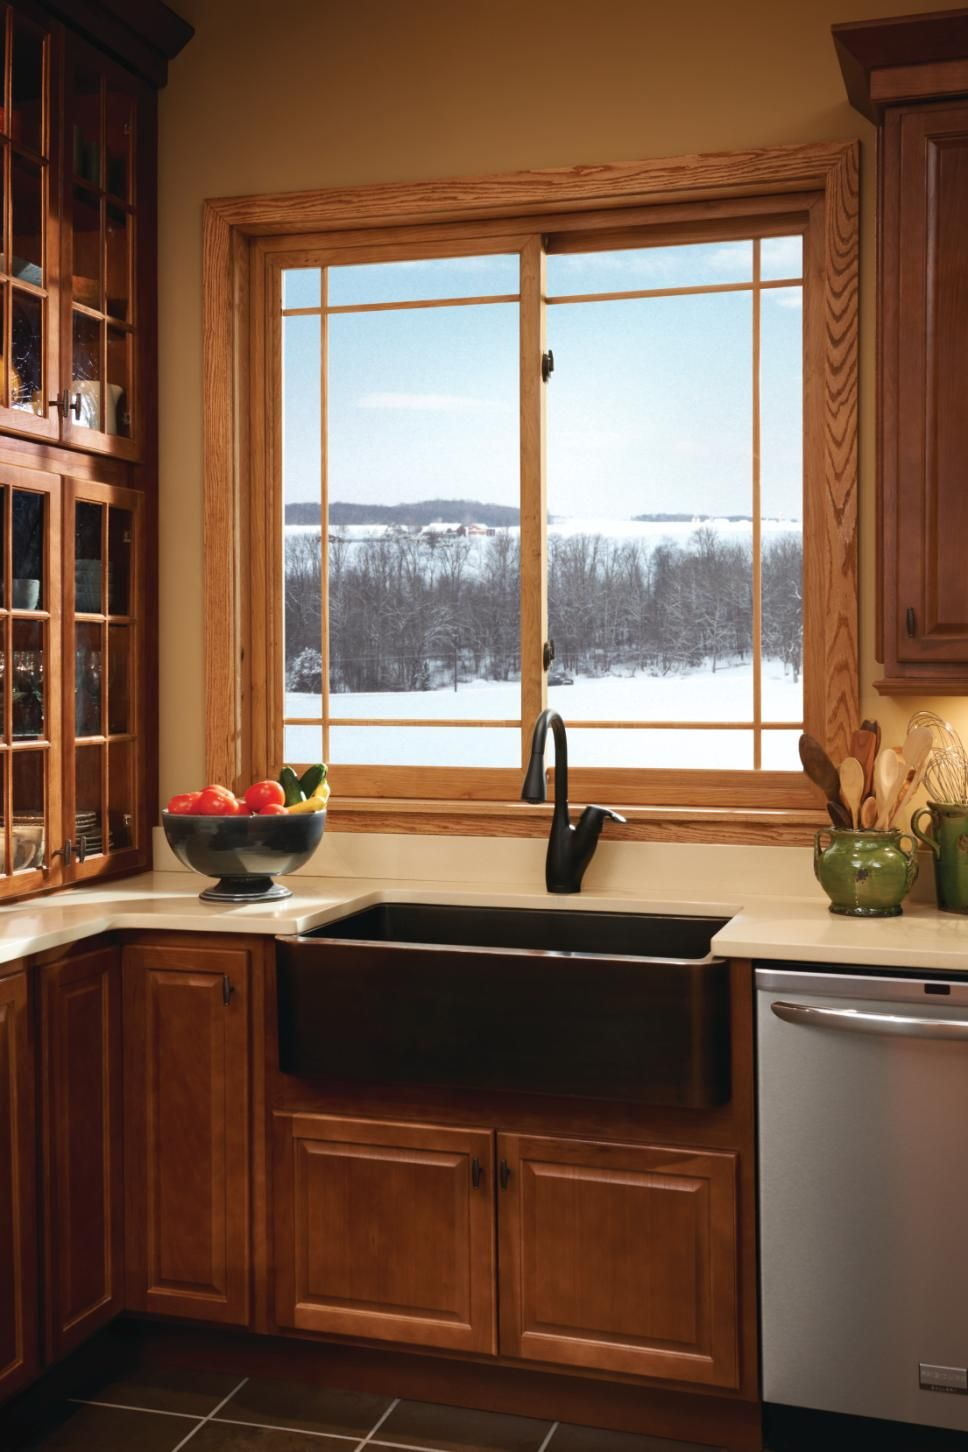 Sliding window over kitchen sink  how to choose the right kitchen windows for your home  window